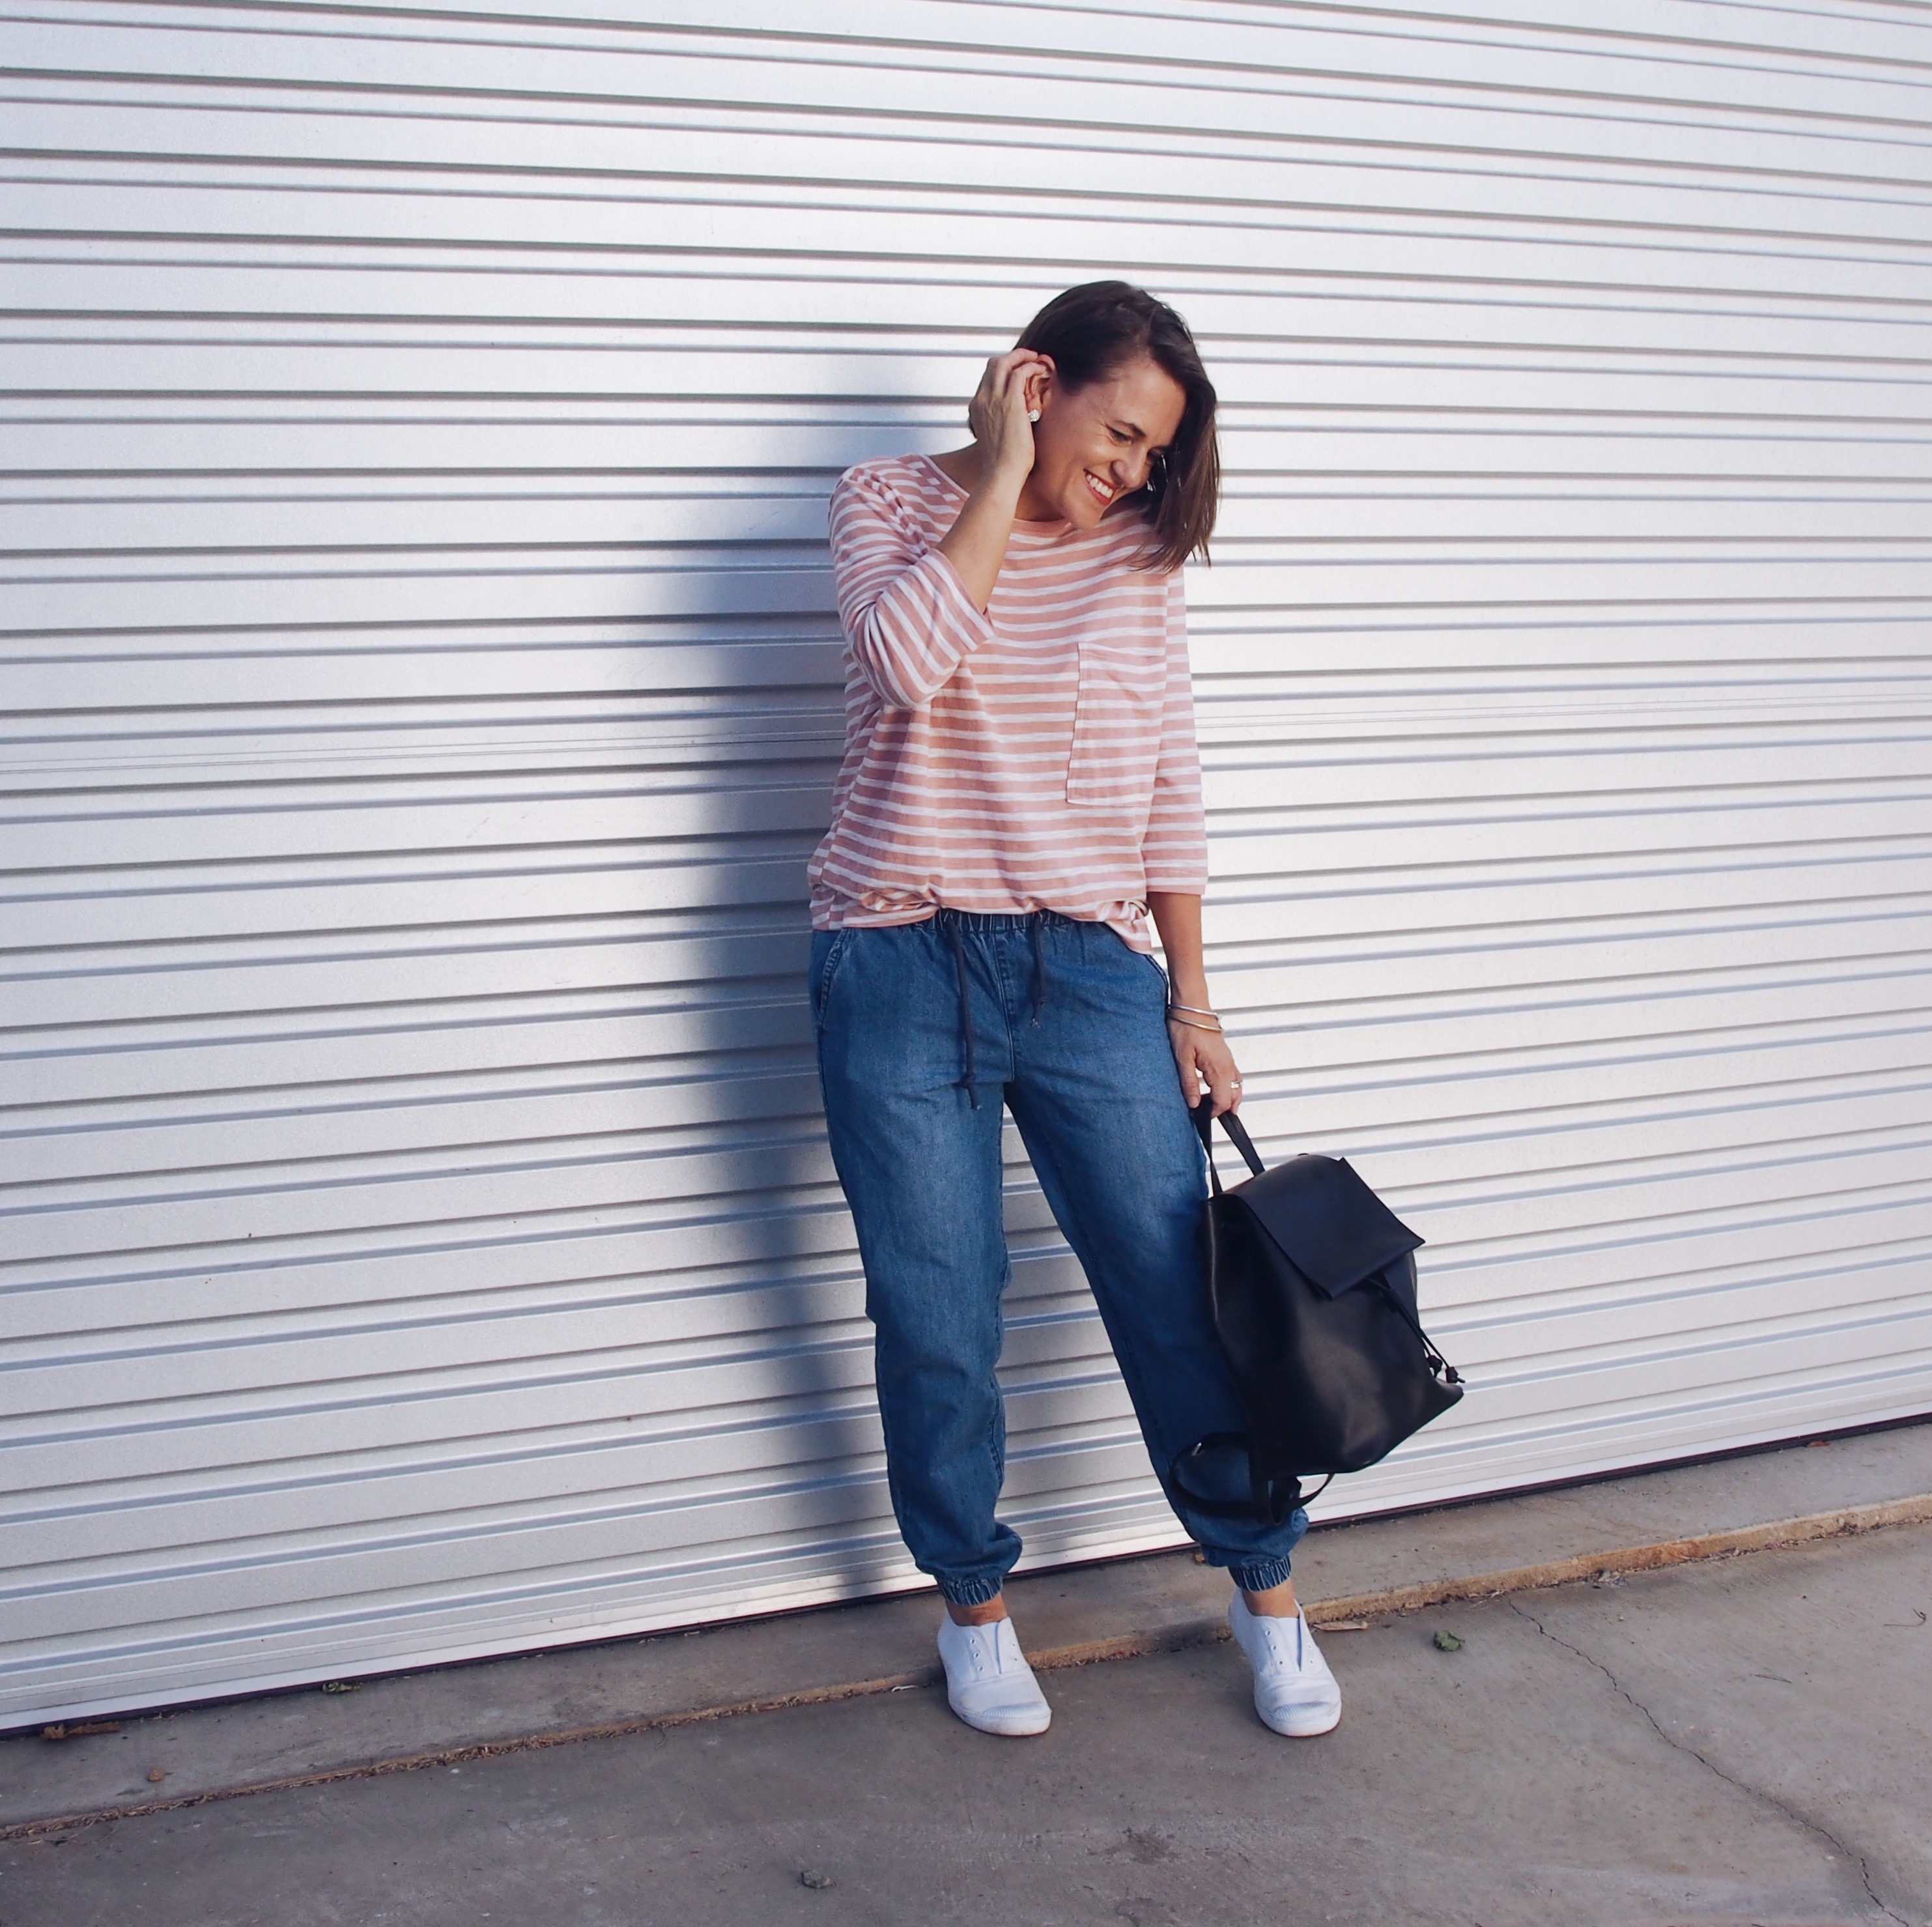 Casual outfit how to wear a stripe t-shirt